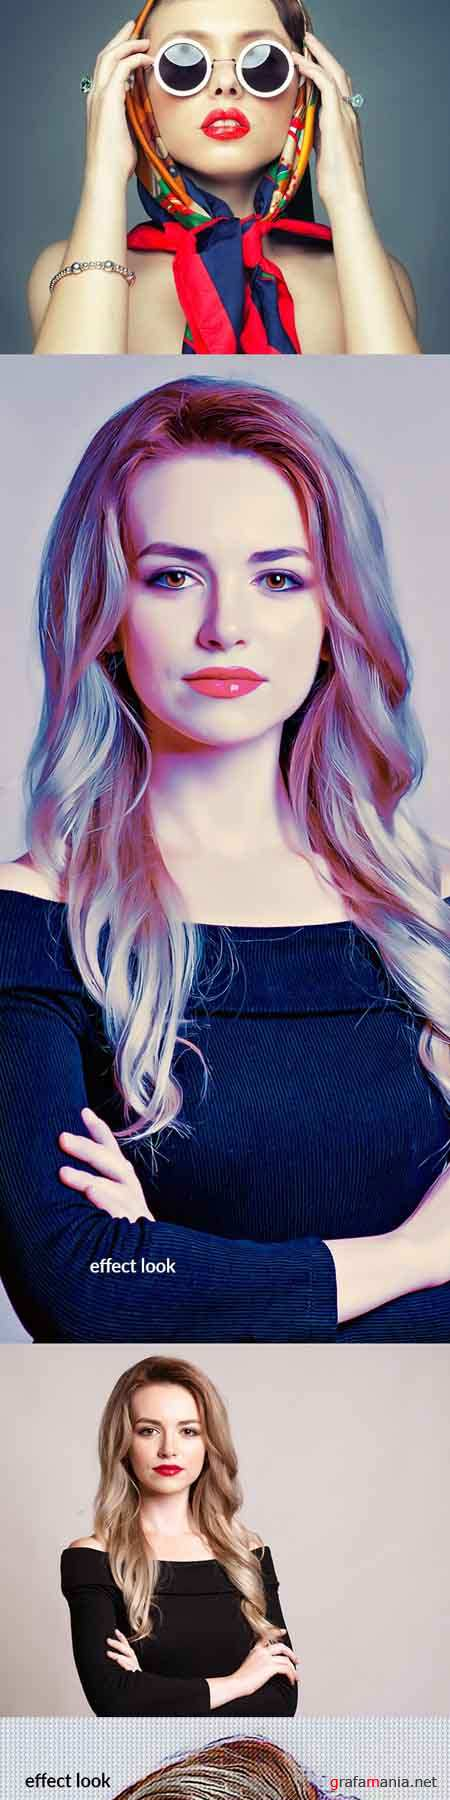 GraphicRiver - CC Panting Effect 18780481